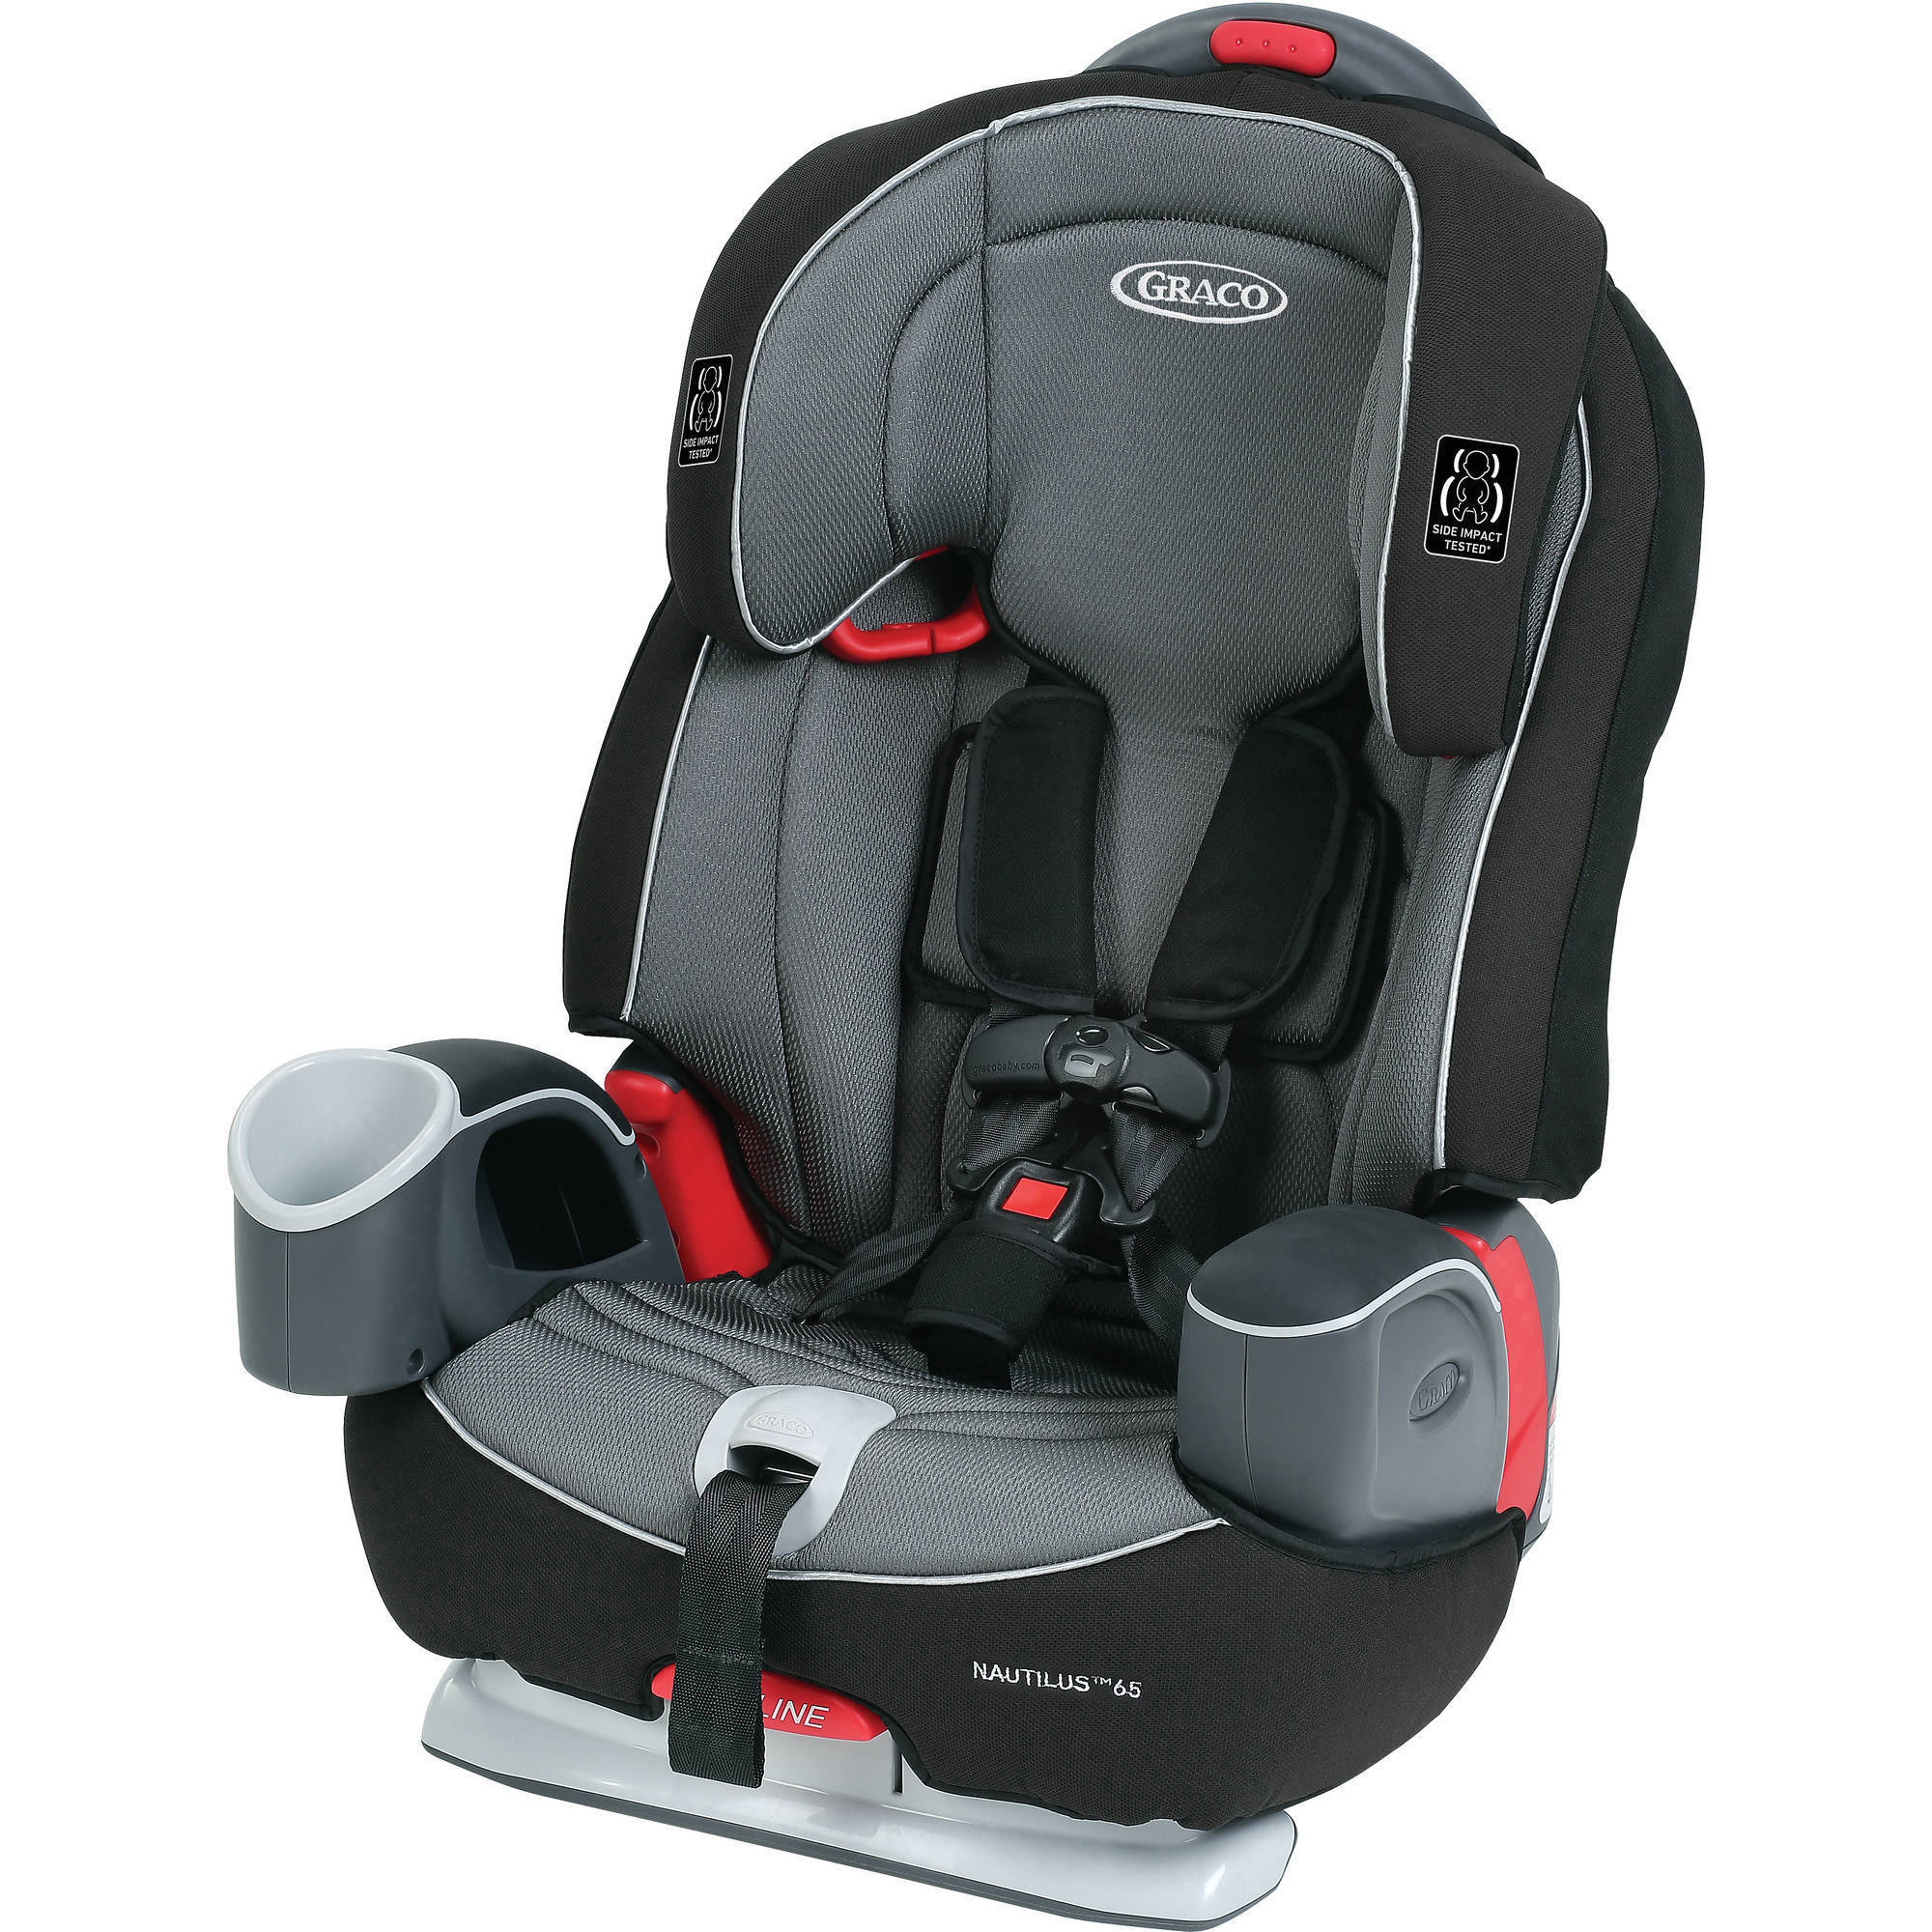 Graco Nautilus 65 3-in-1 Multi-Use Harness Booster Car Seat  sc 1 st  Walmart : reclining baby seat - islam-shia.org